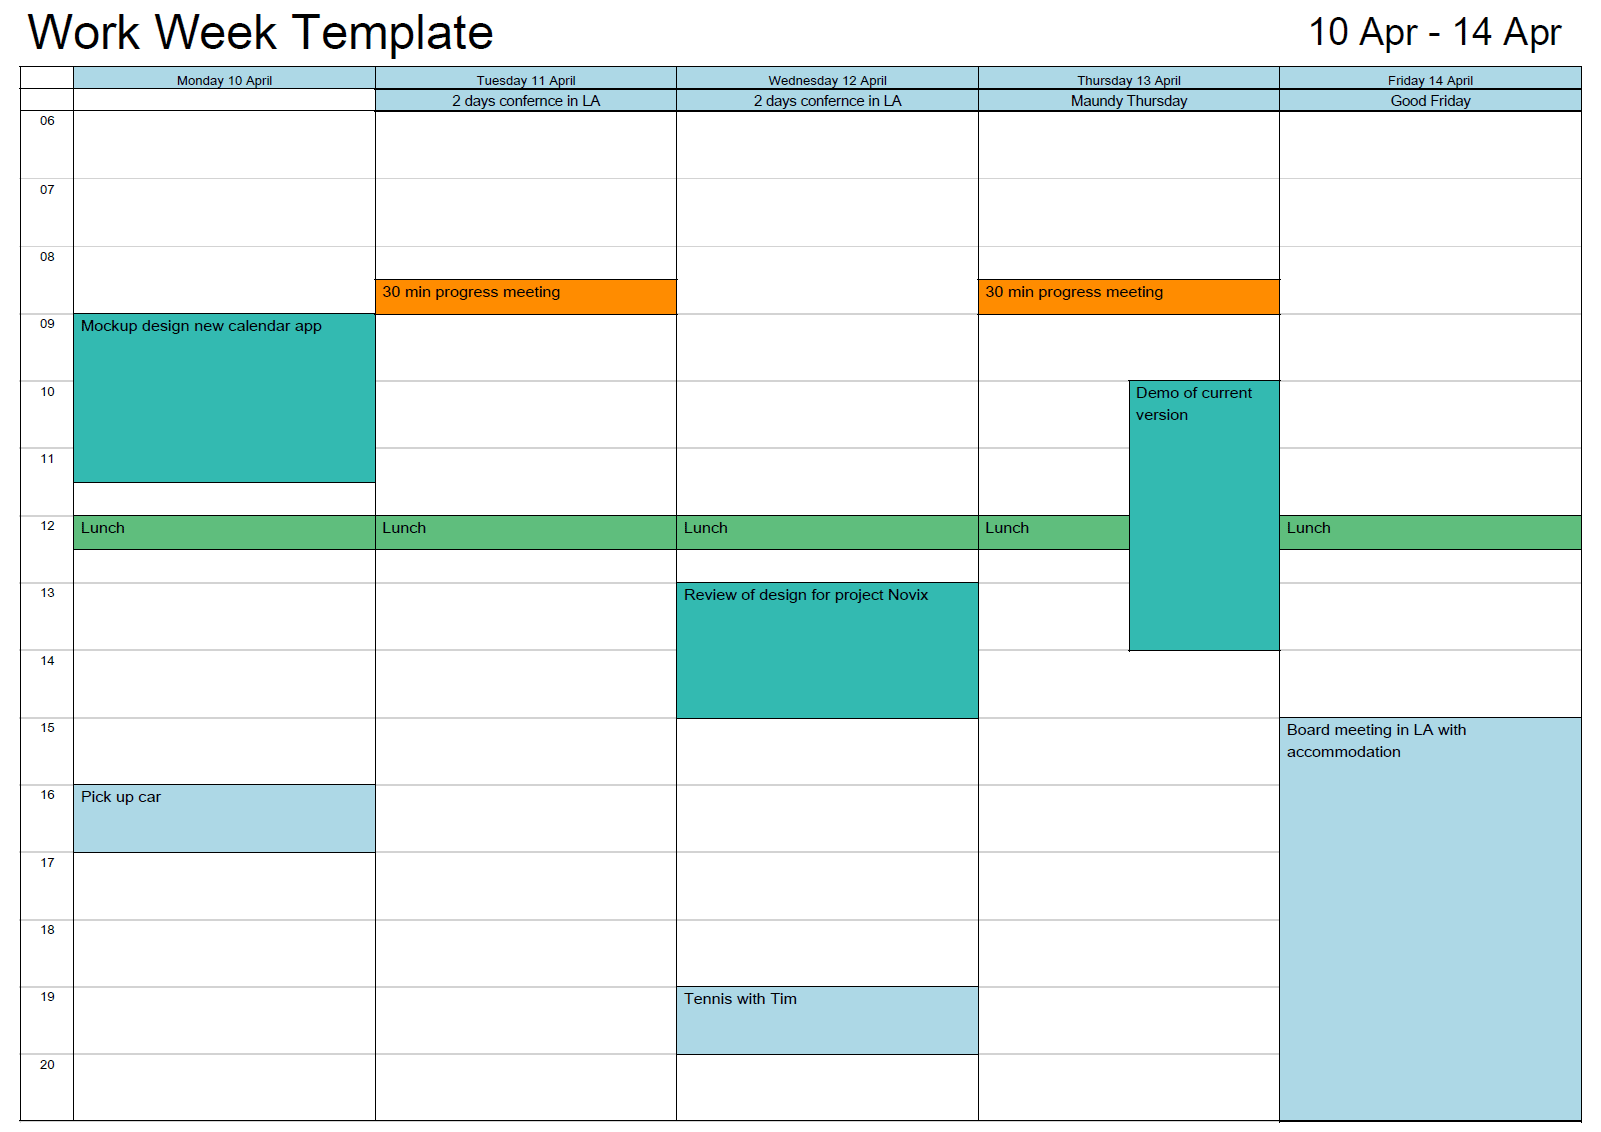 Outlook calendar print for Outlook calendar printing assistant templates